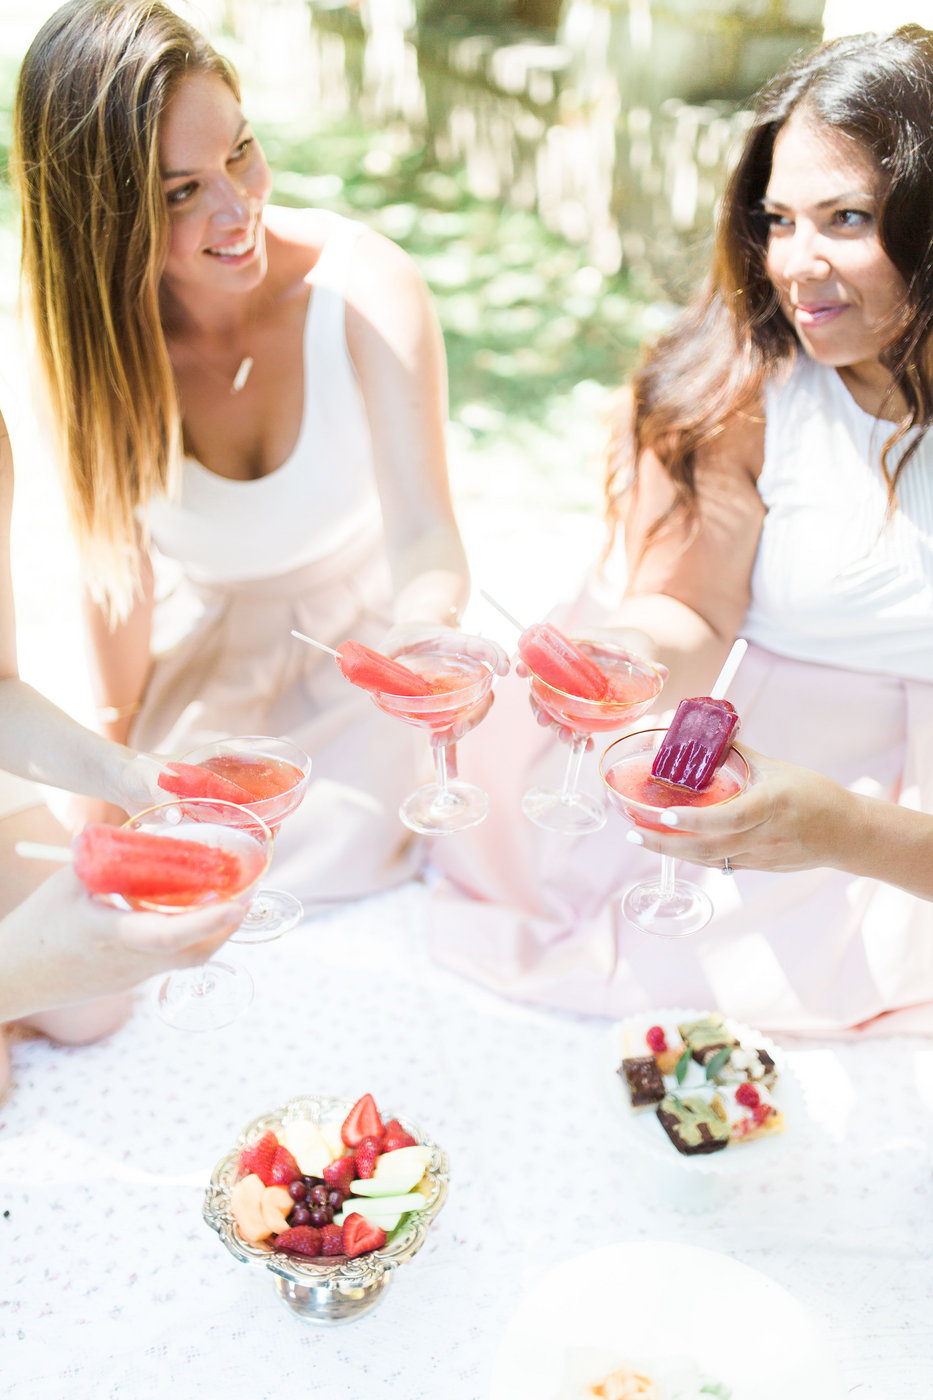 Do You Need to Serve a Full Meal at the Bridal Shower? Here's How to Decide